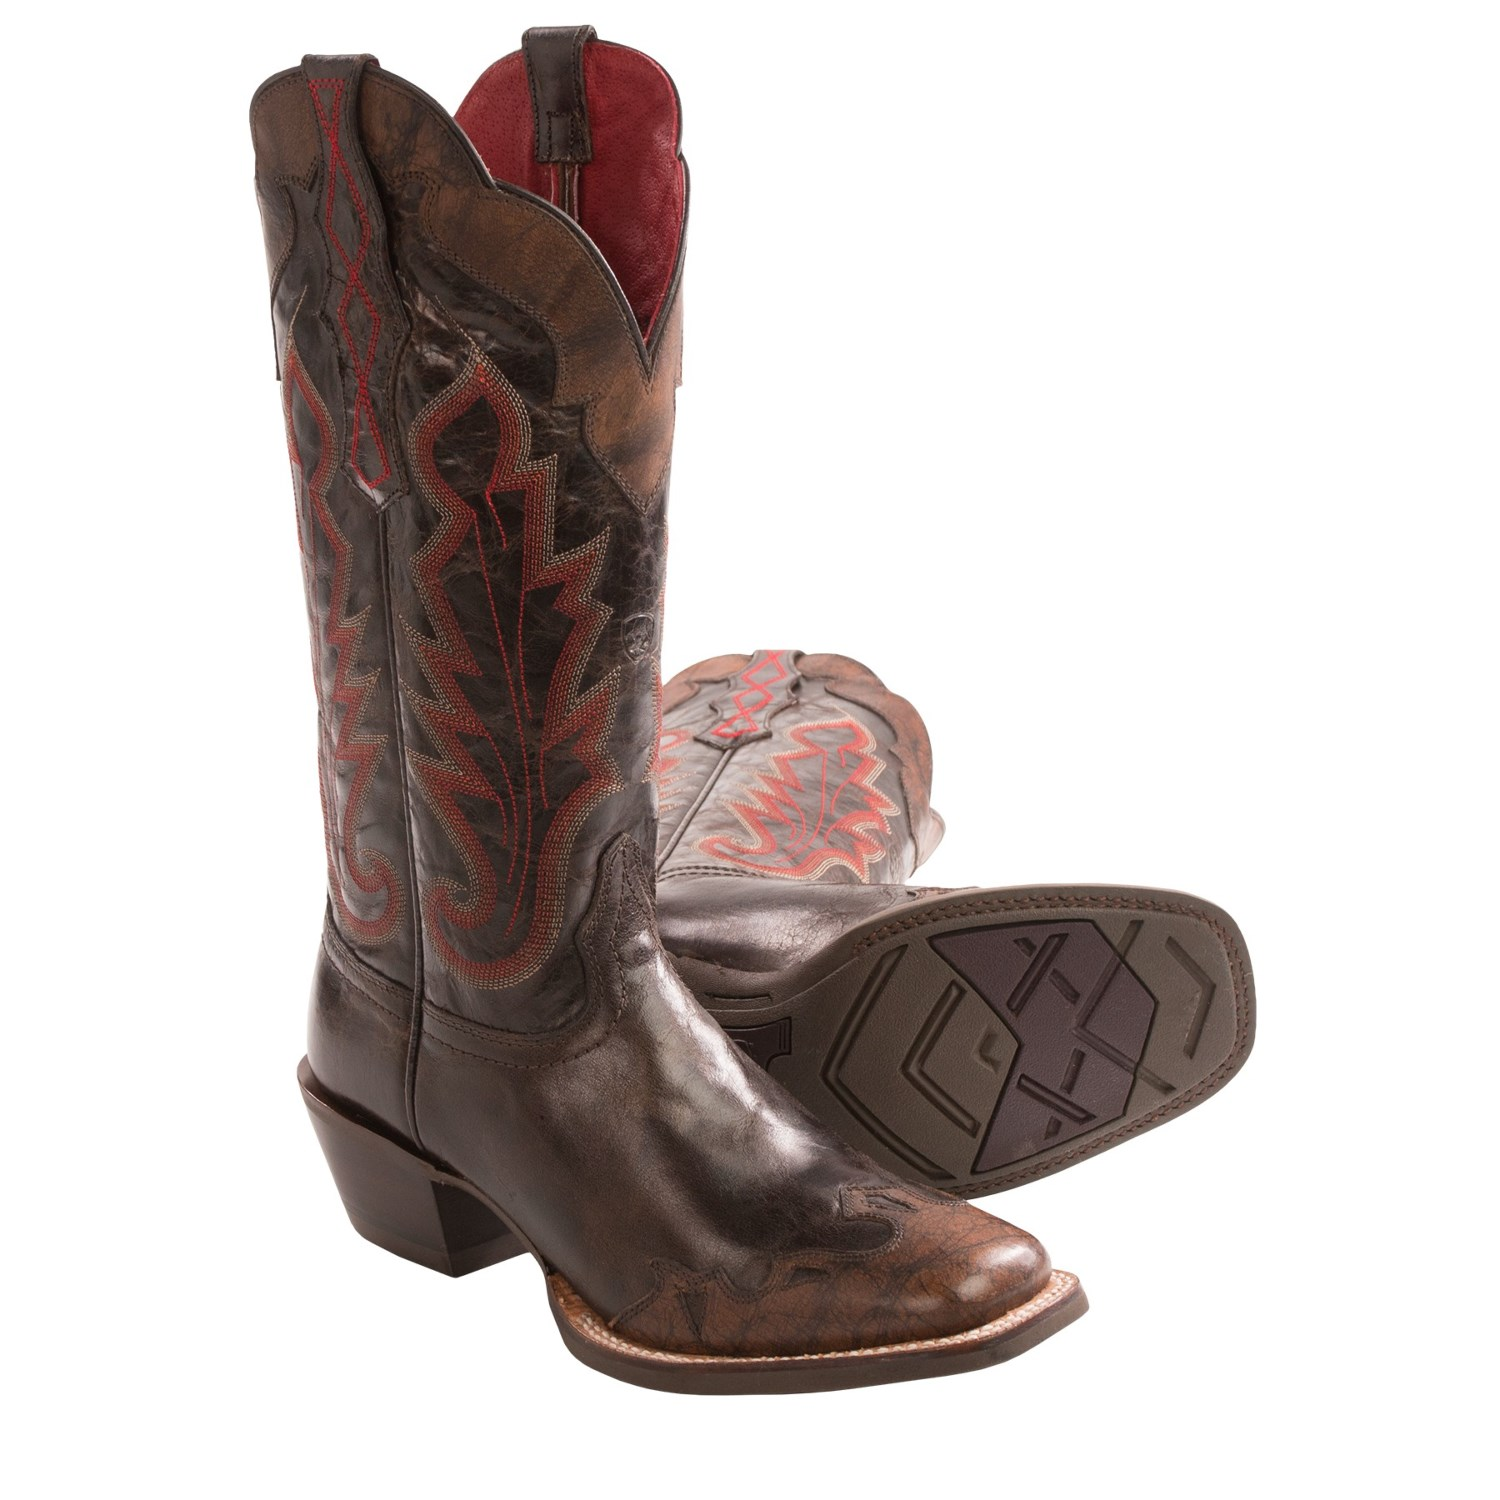 Ariat Tracker Winter Boots Review | Santa Barbara Institute for ...